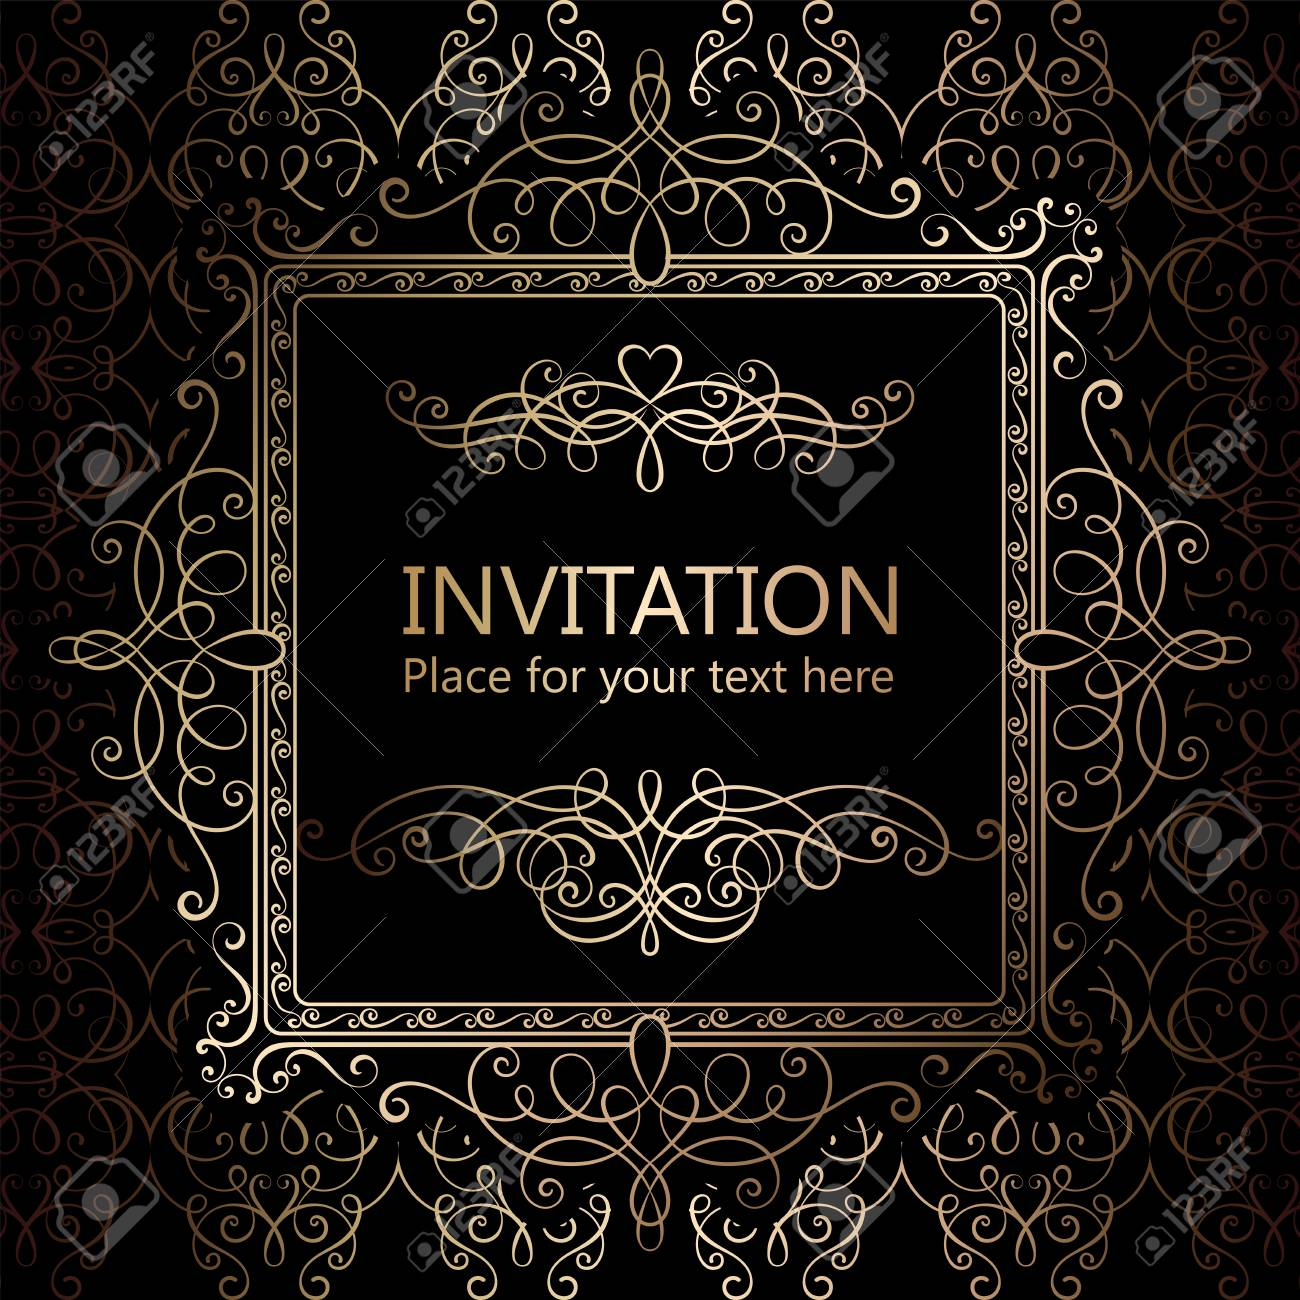 Abstract Background With Calligraphic Luxury Gold Flourishes And Vintage Frame Victorian Bannerwallpaper Ornaments Invitation Card Baroque Style